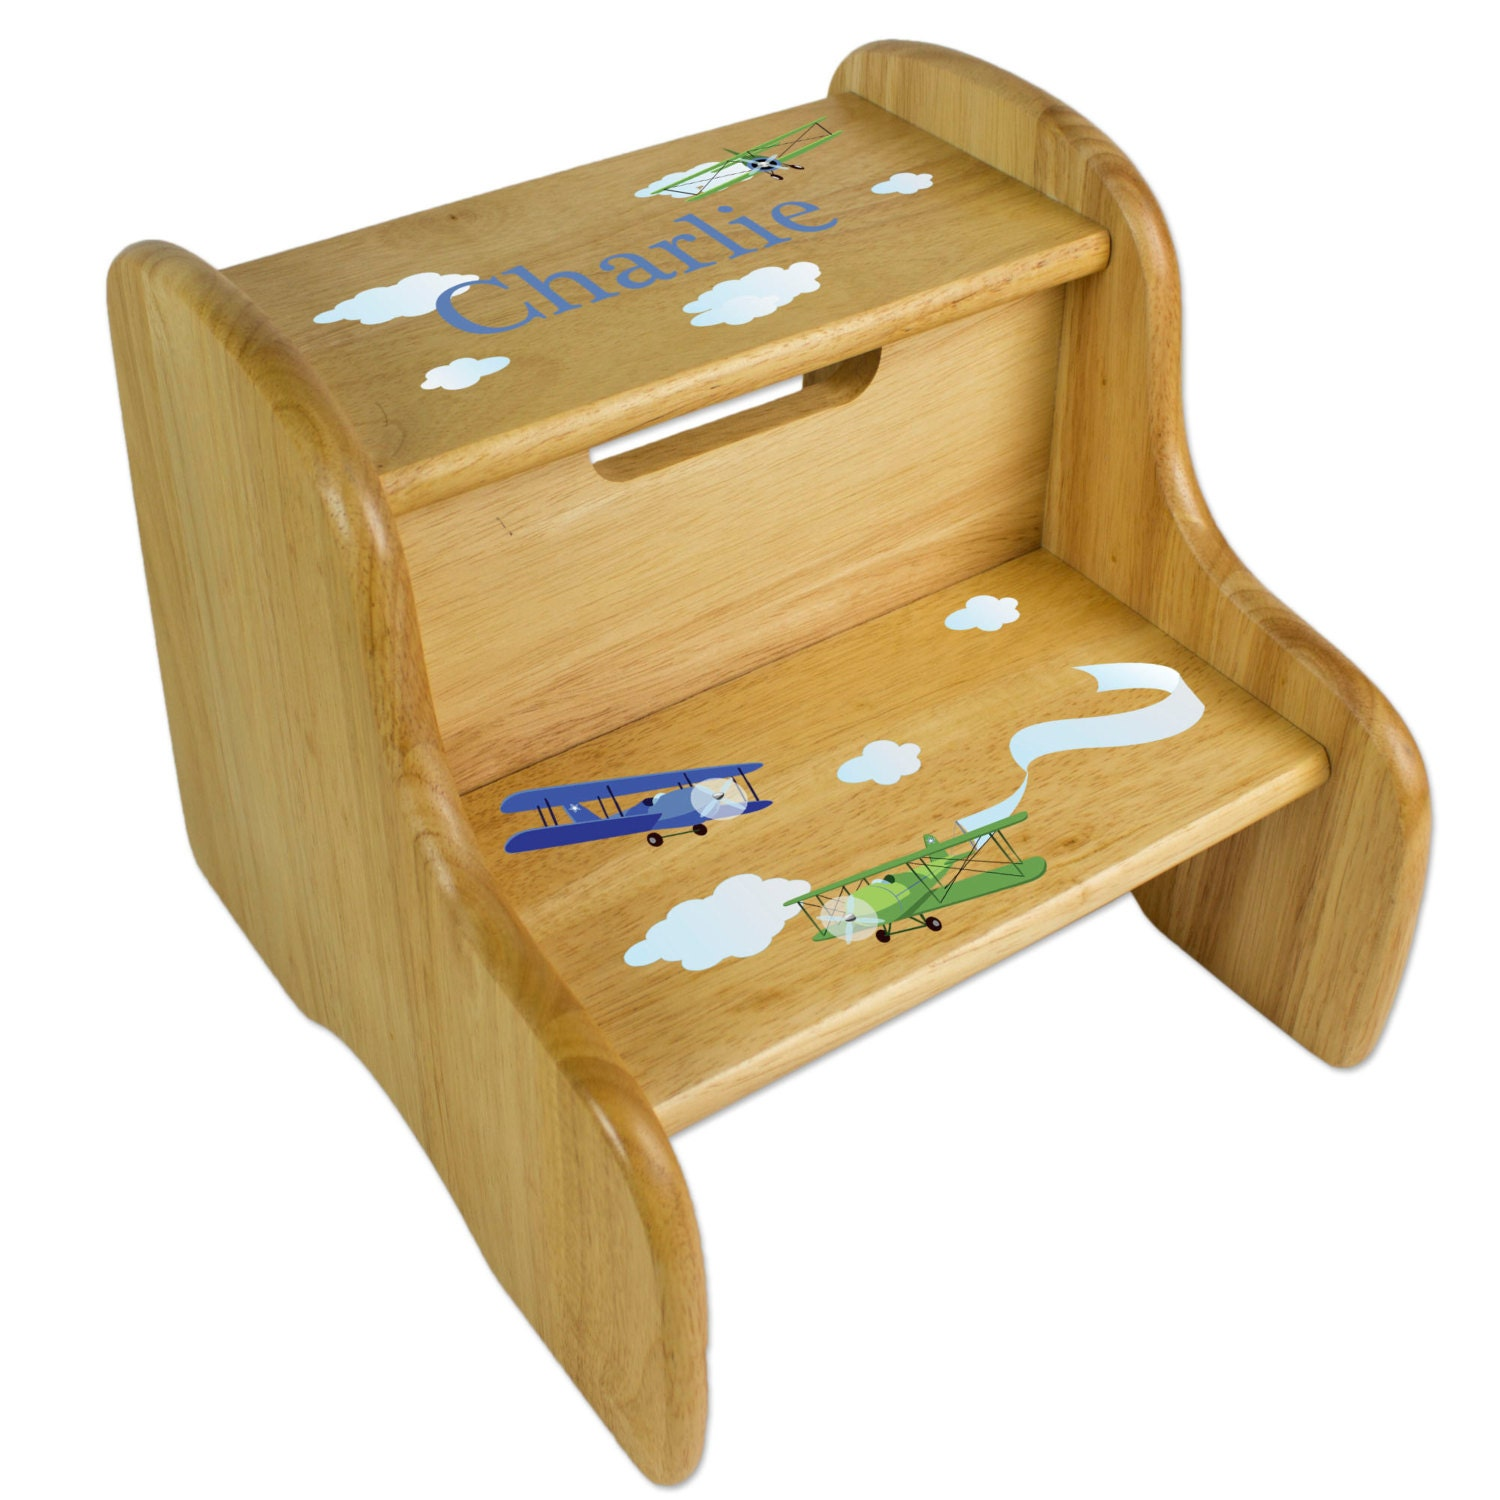 Vintage Airplane Step Stool Personalized Wood Stools For Baby